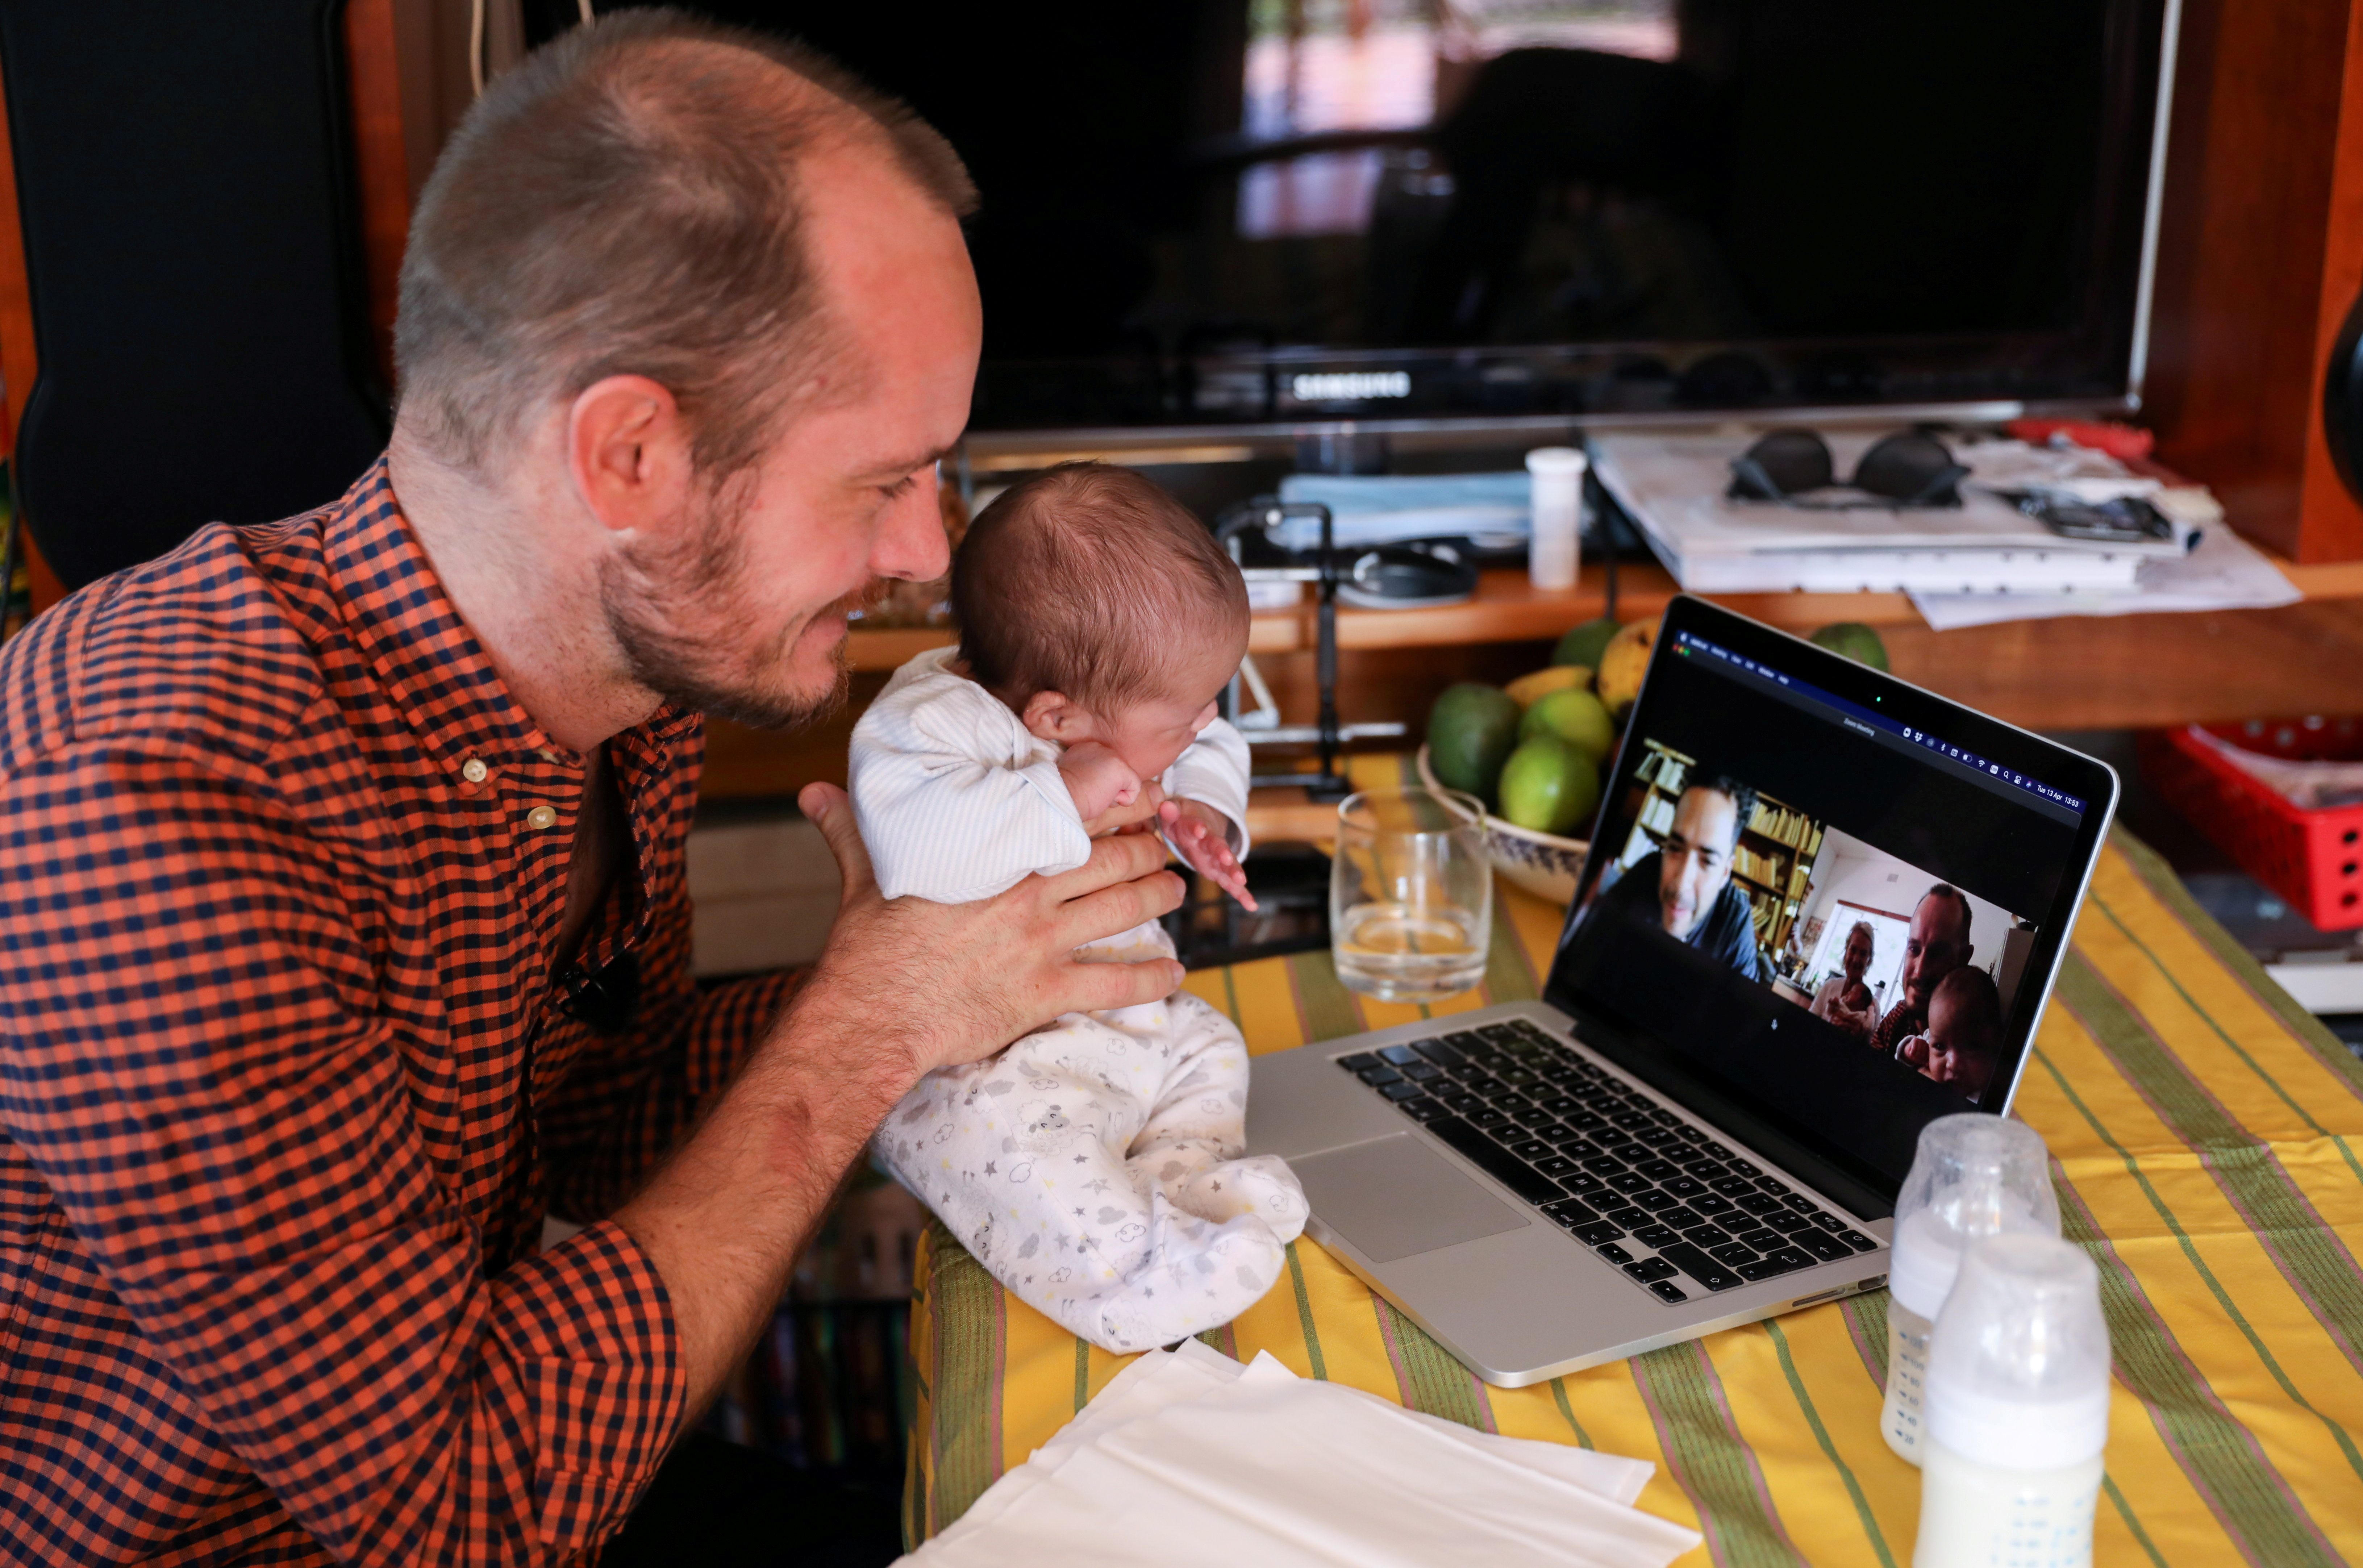 Namibian citizen Phillip Luhl holds one of his twin daughters as he speaks to his Mexican husband Guillermo Delgado via Zoom meeting in Johannesburg, South Africa, April 13, 2021. REUTERS/Siphiwe Sibeko